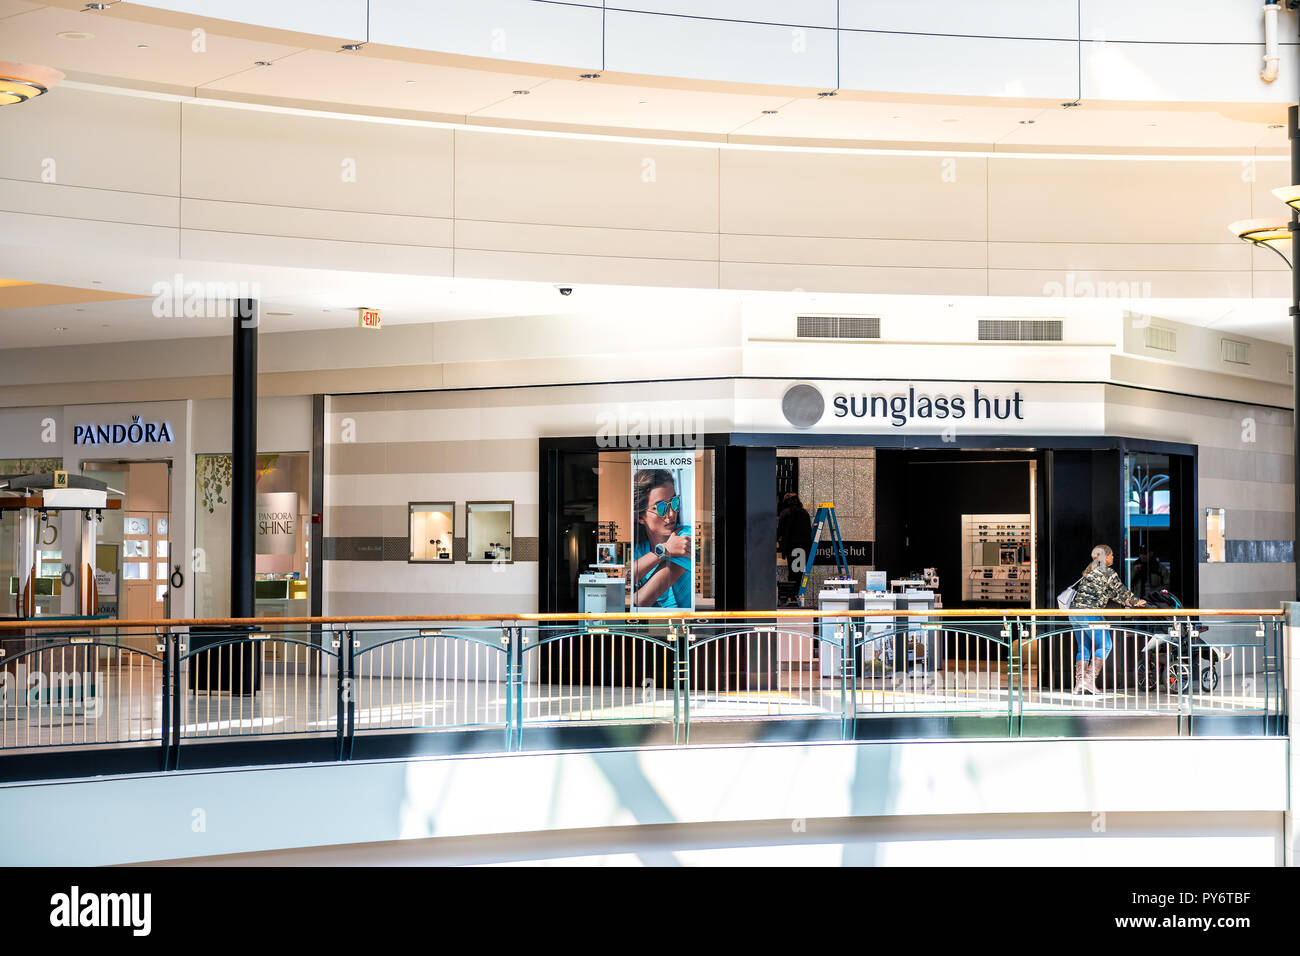 Sunglass Hut Stock Photos Amp Sunglass Hut Stock Images Alamy